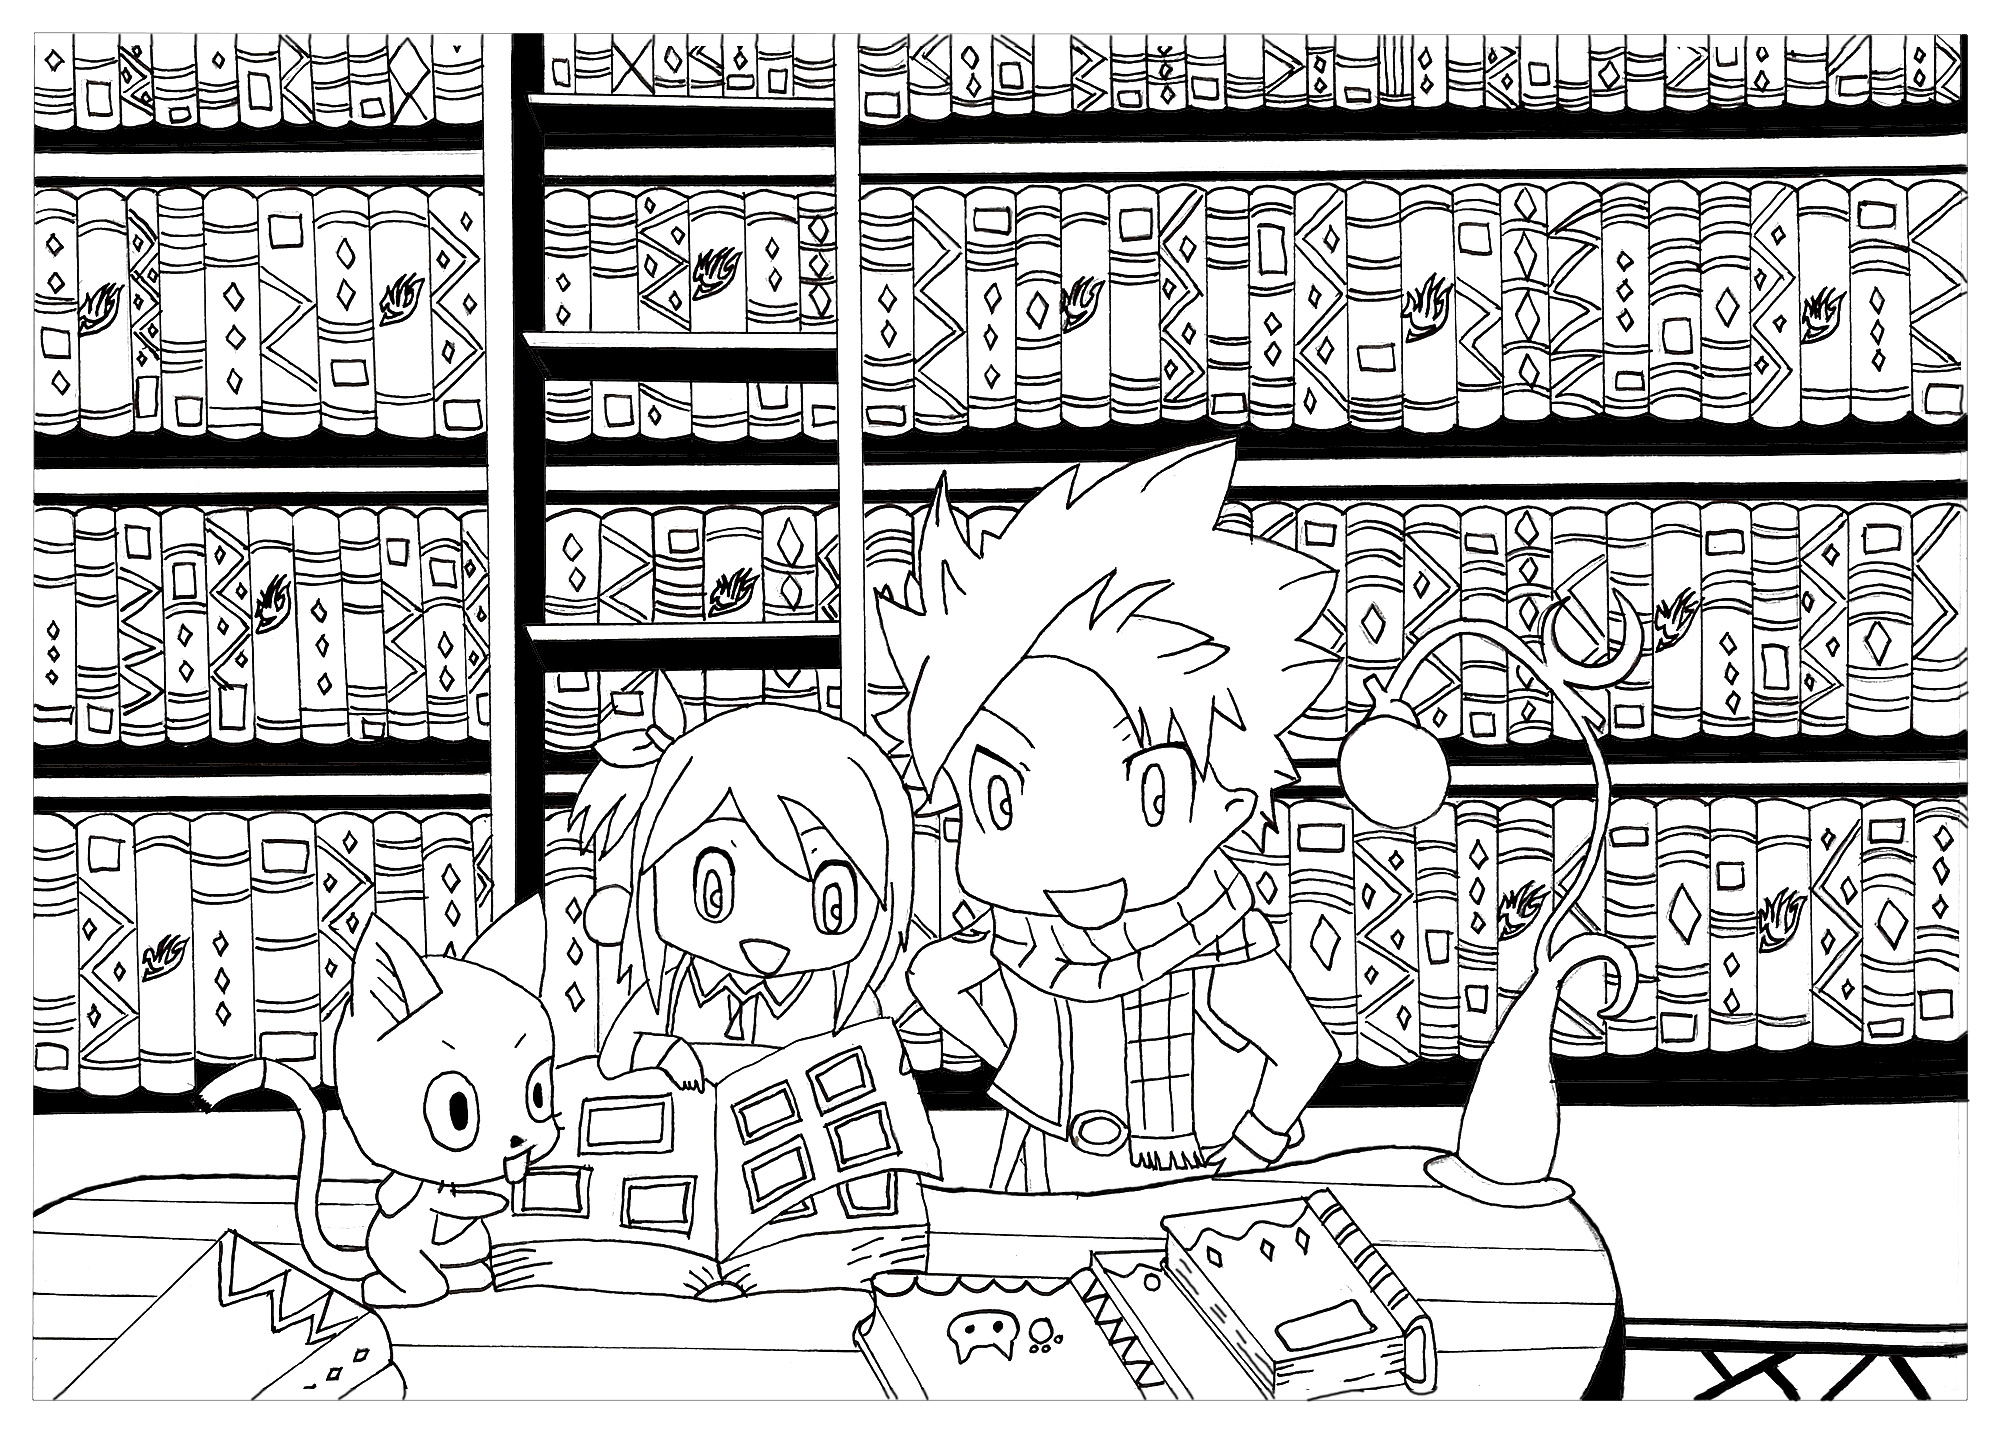 Manga chibi fairy tail krissy krissy coloriages difficiles pour adultes - Fairy tail coloriage ...